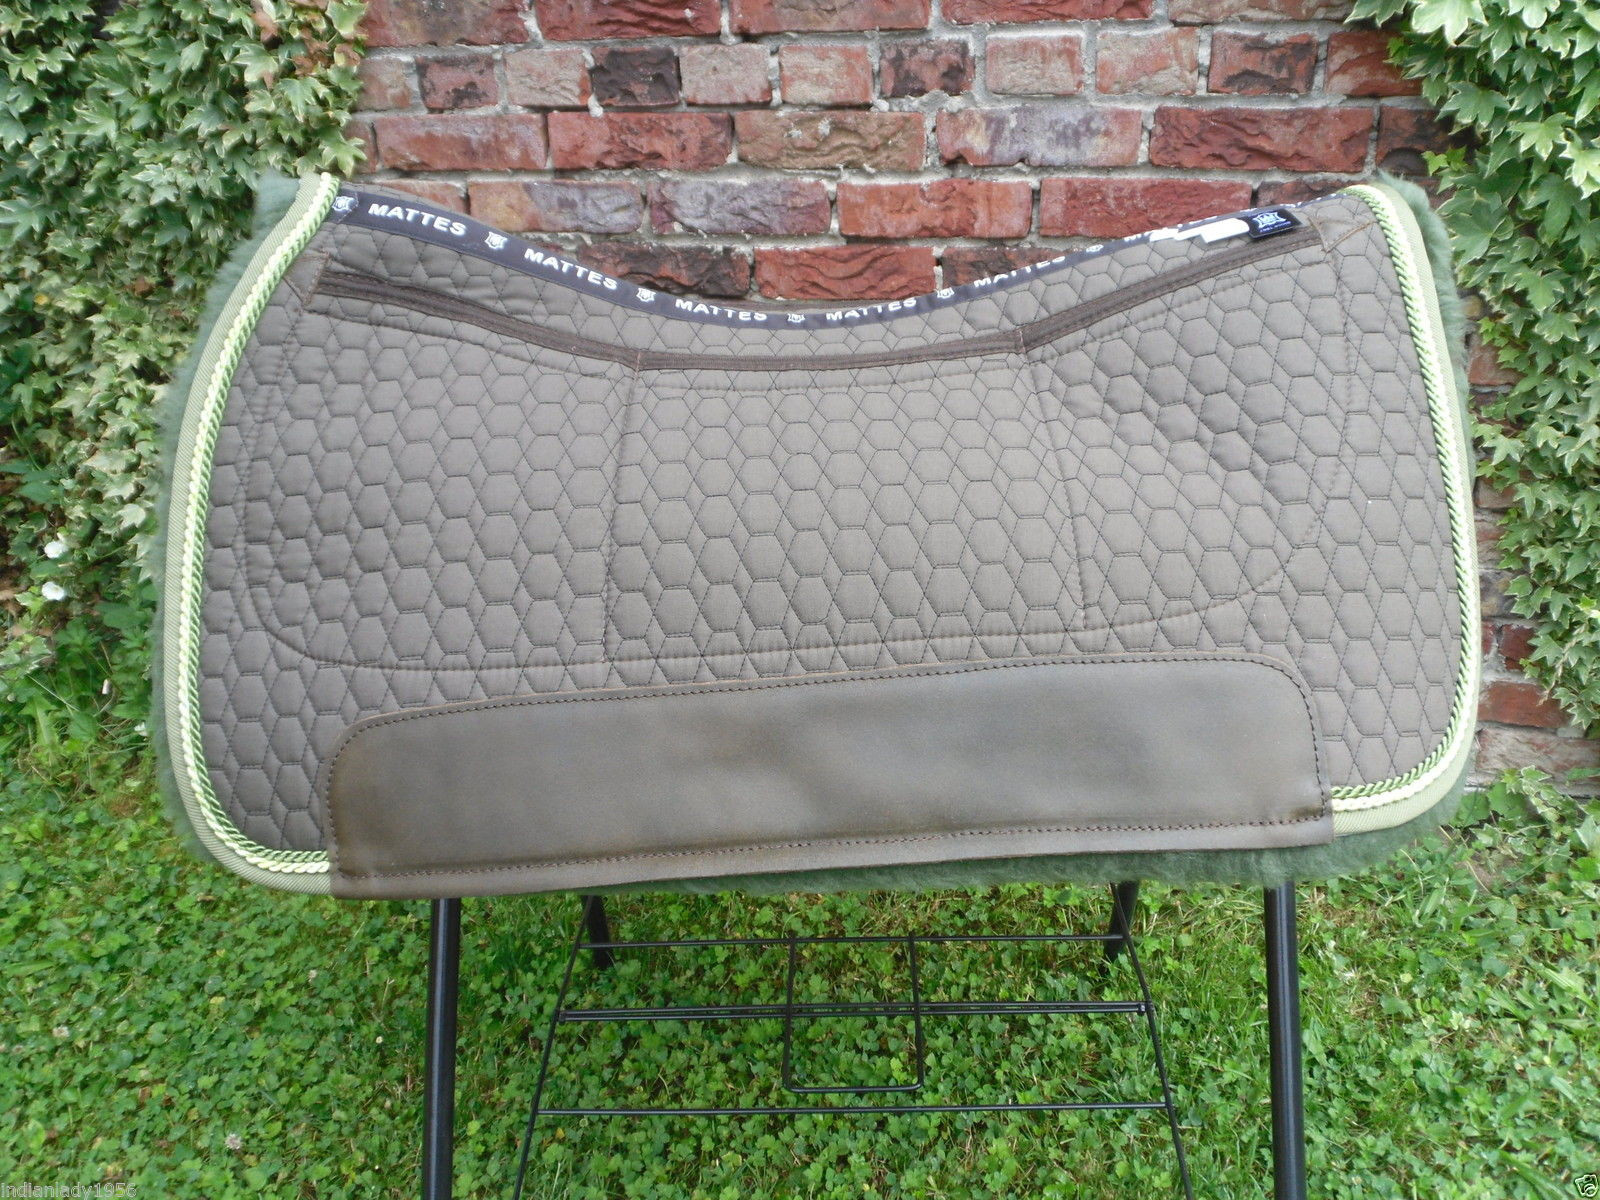 Correction Westernpad Square Mattes Stoff taupe Lammfell olive 2 Kordeln 70 cm